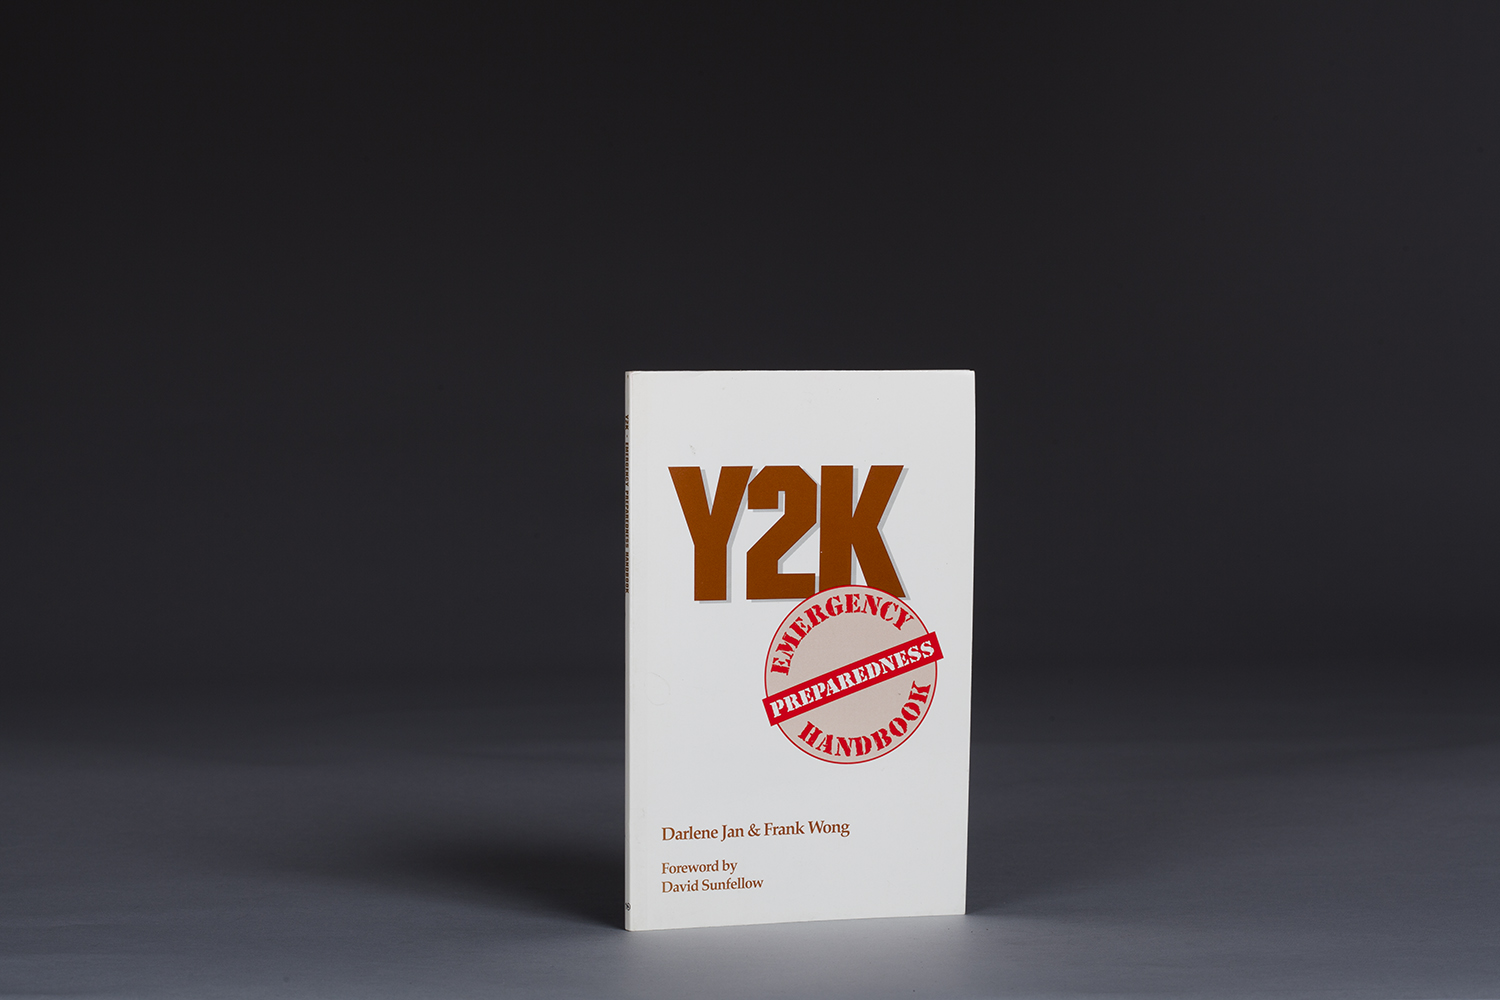 Y2K Emergency Preparedness Handbook - 9988 Cover.jpg